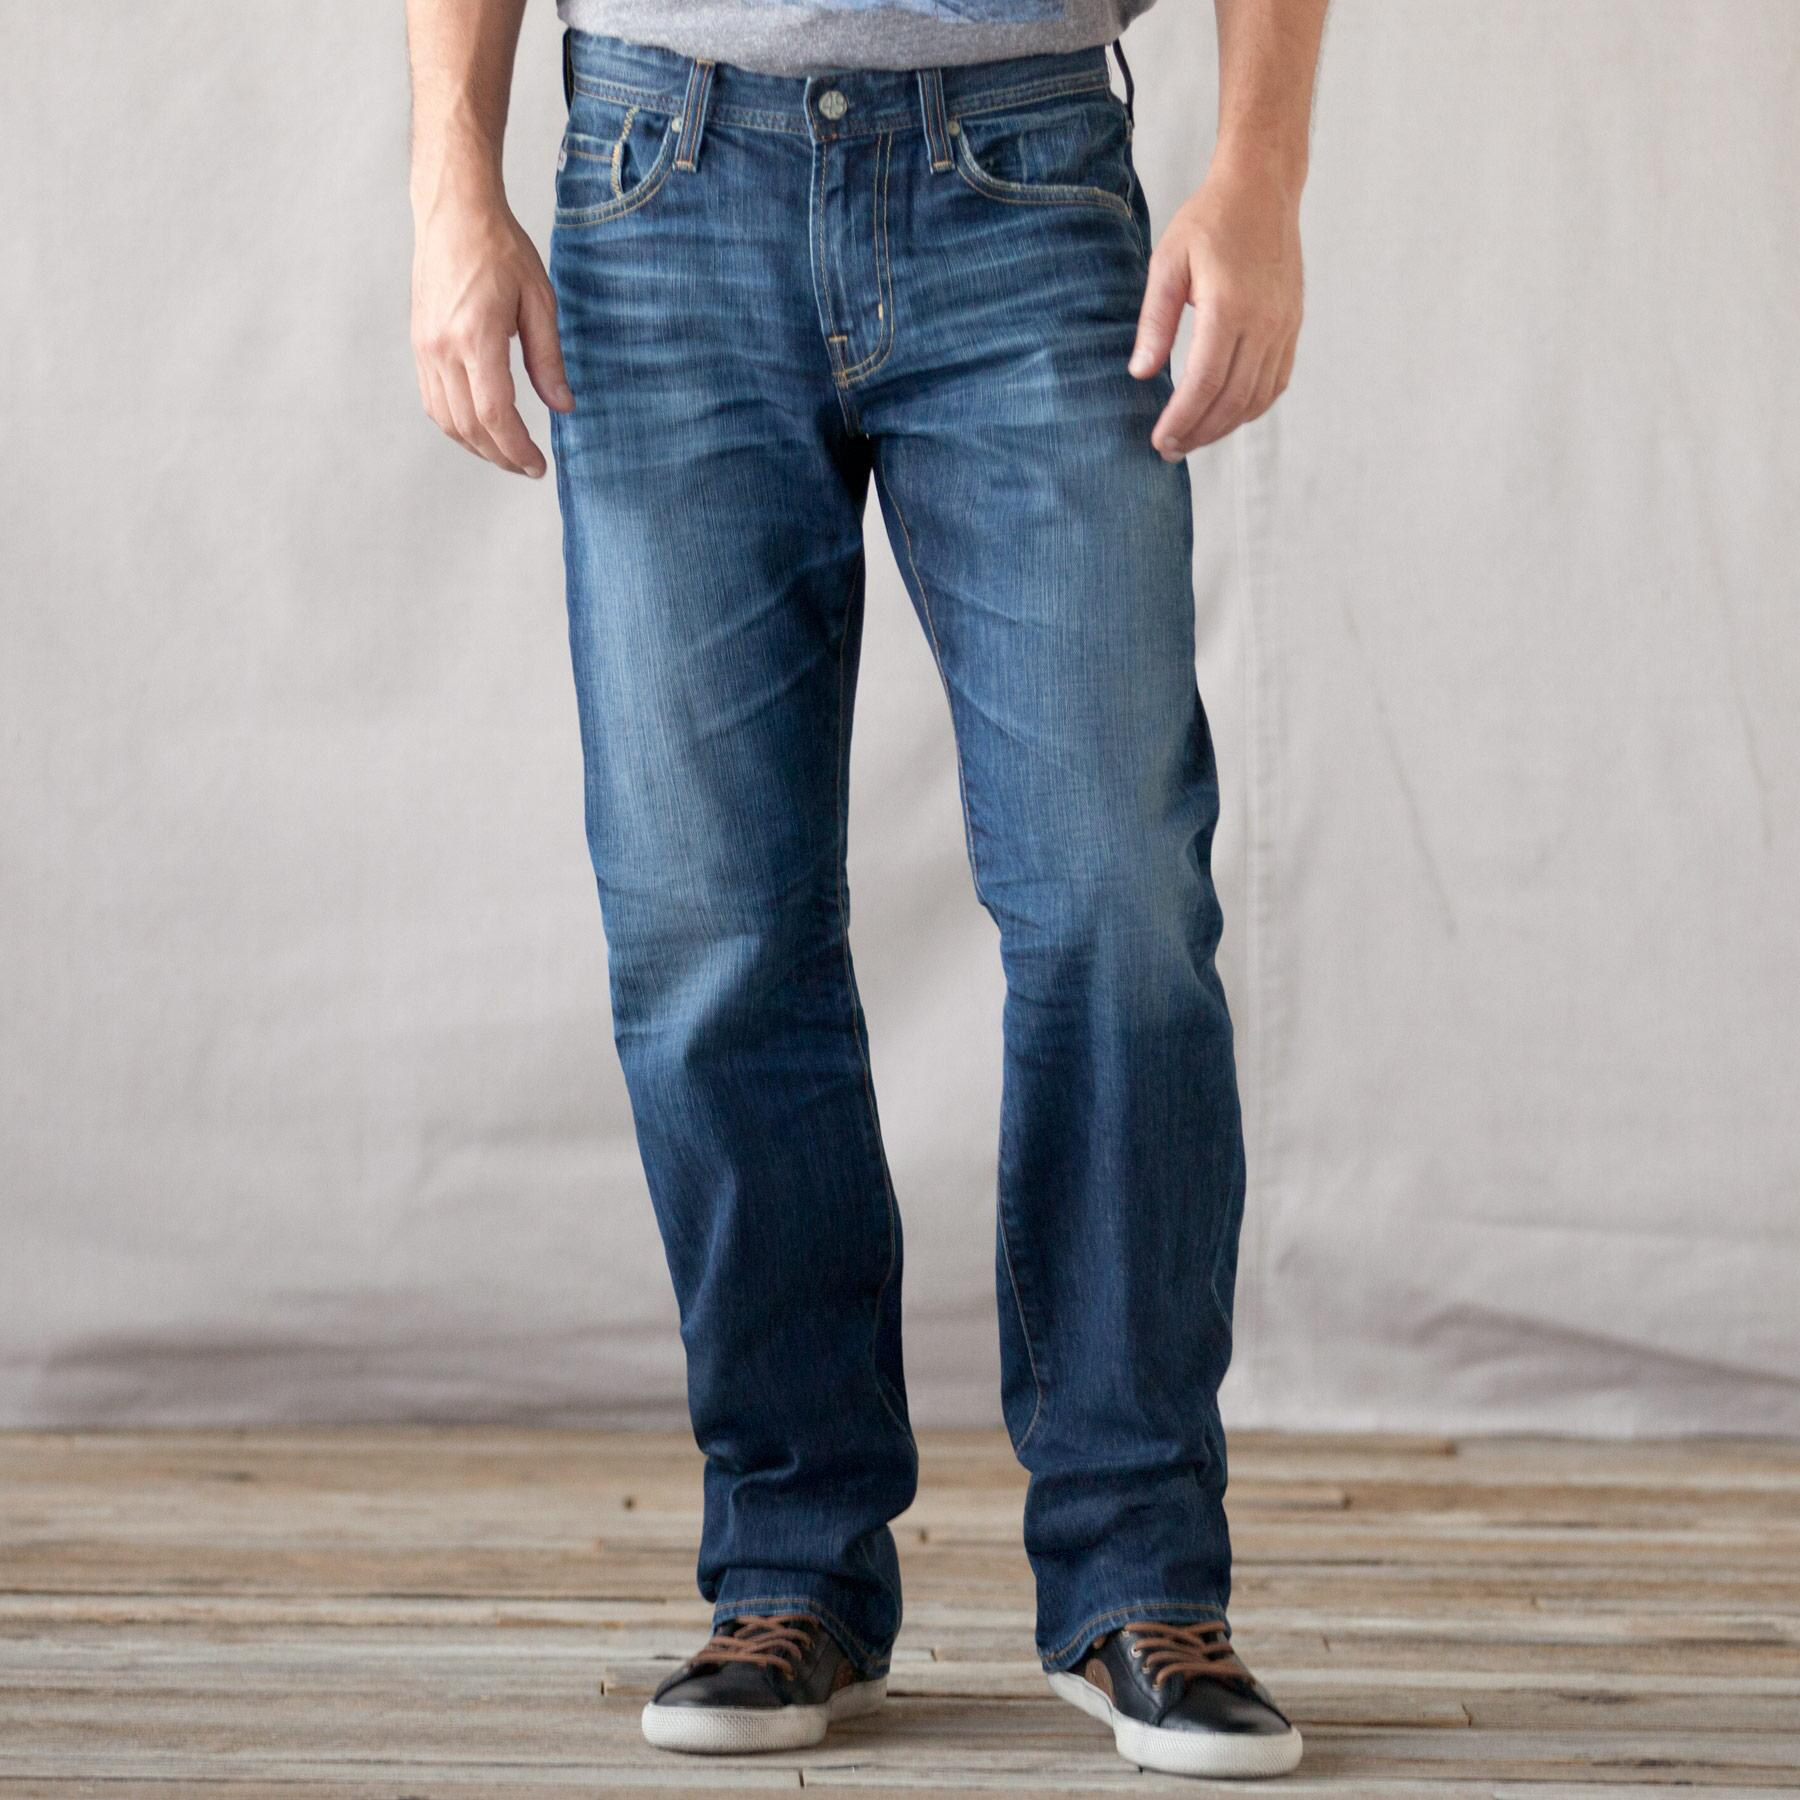 AG Adriano Goldschmied 10 Year Protege Jeans